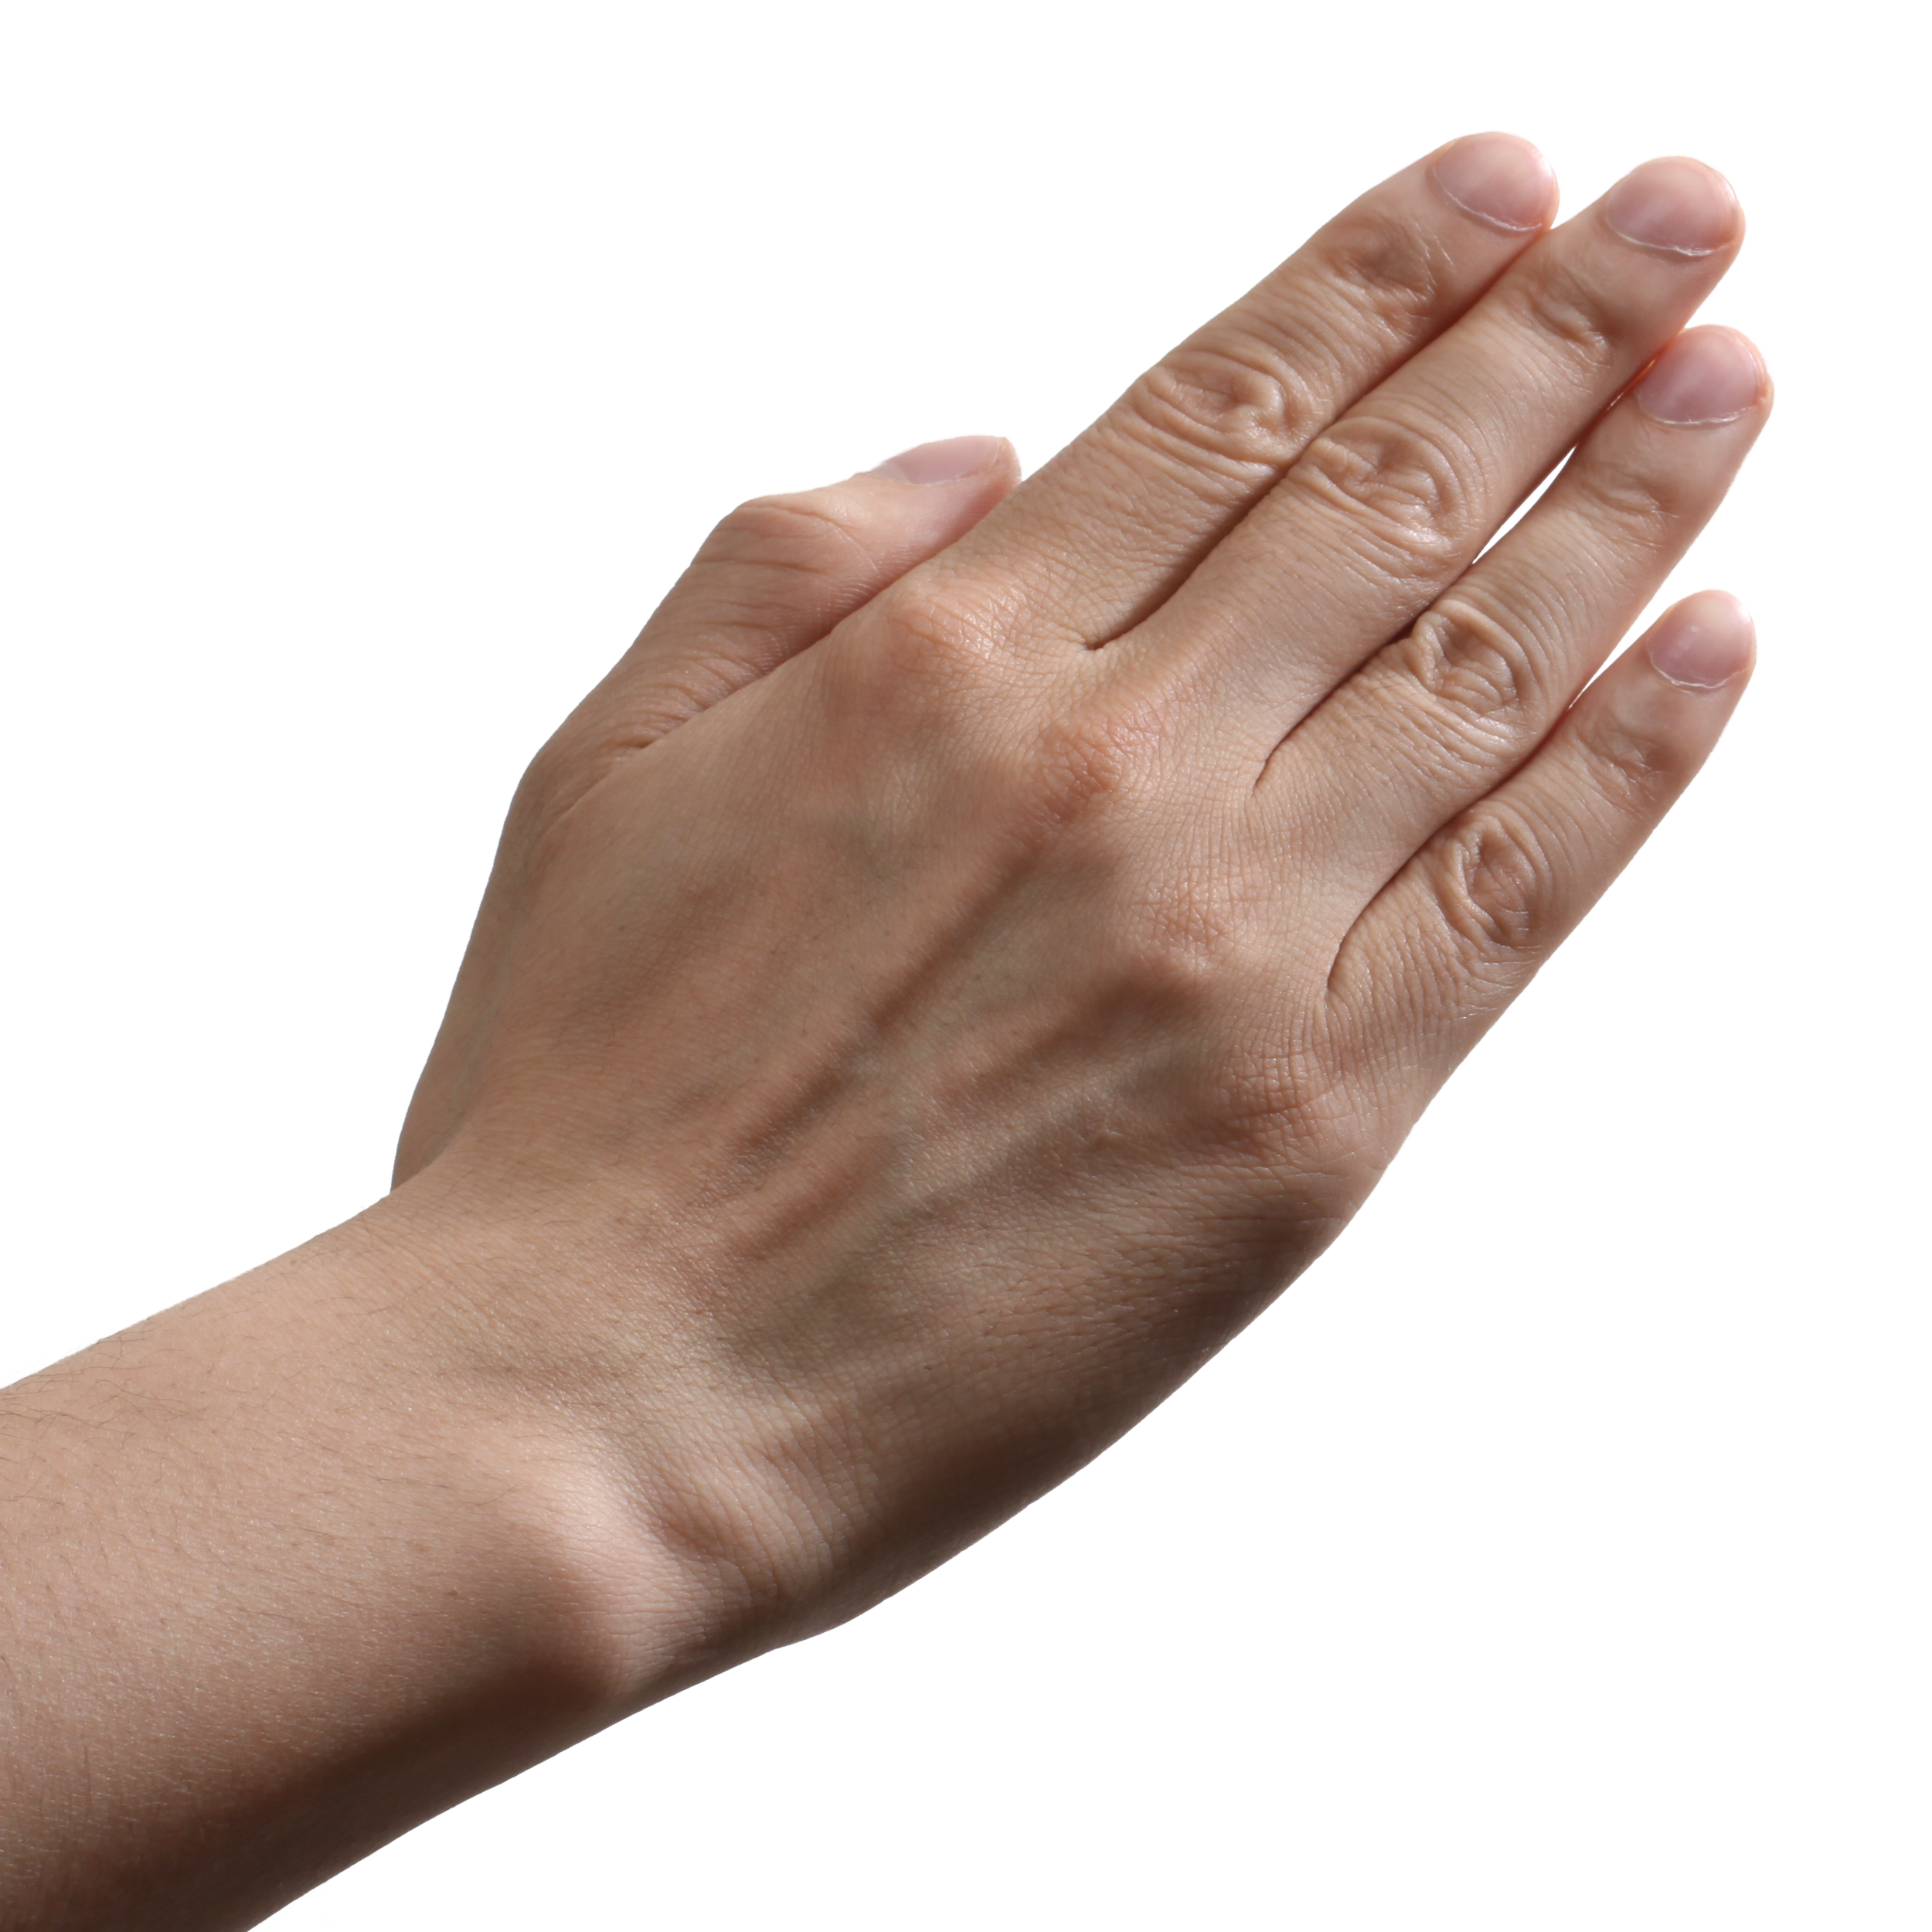 Hands Png Image For Free Download Download hands transparent png image for free. hands png image for free download